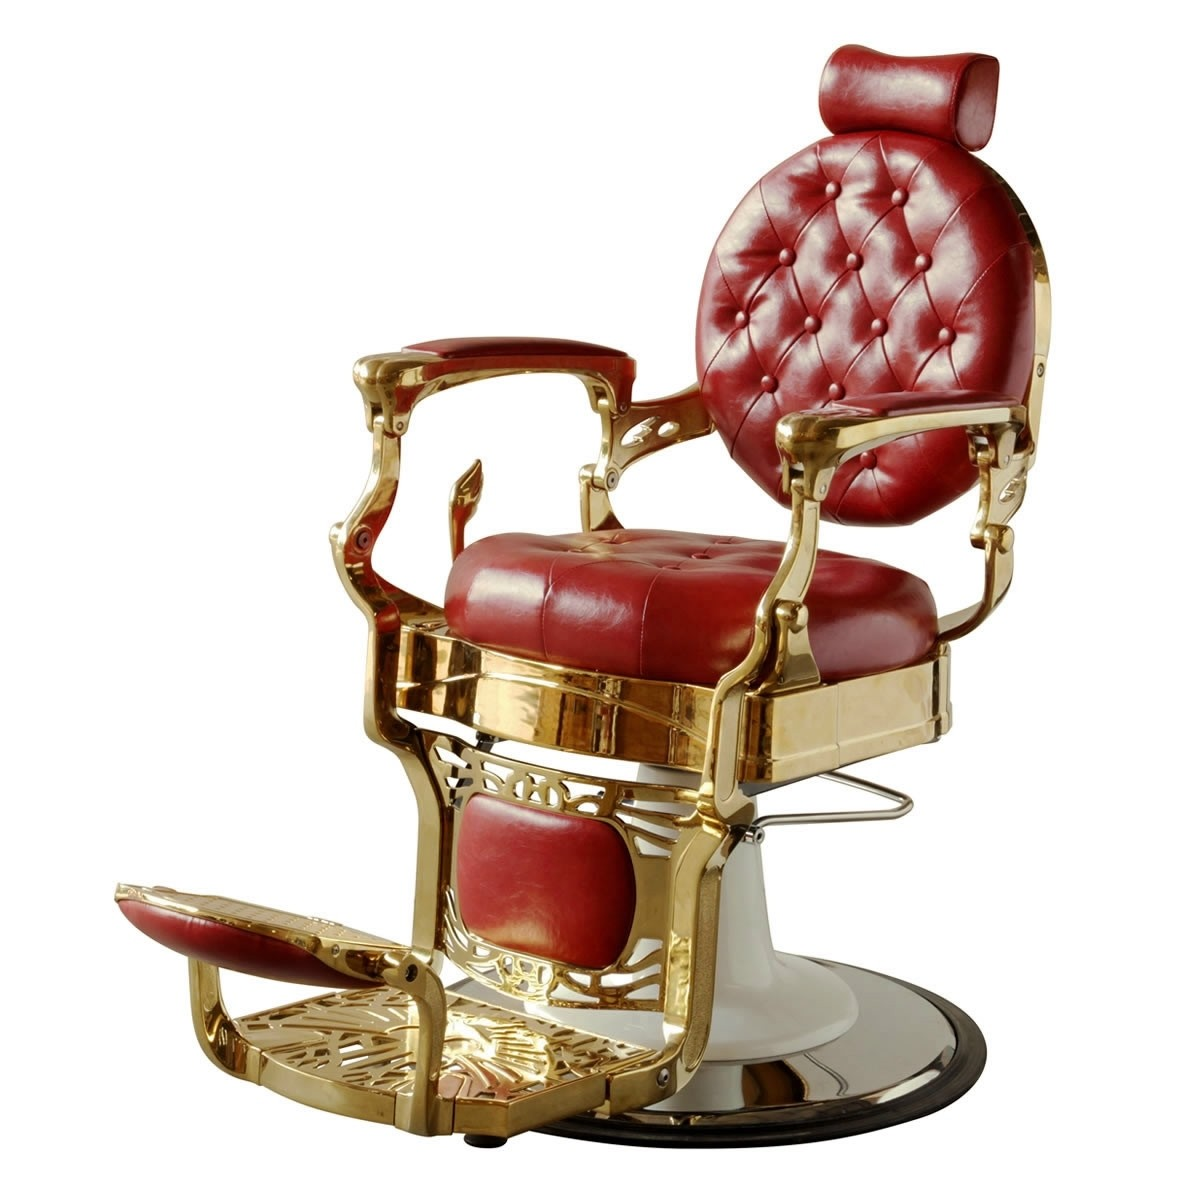 """THEODORE"" Golden Barber Chair in Cardinal Red"